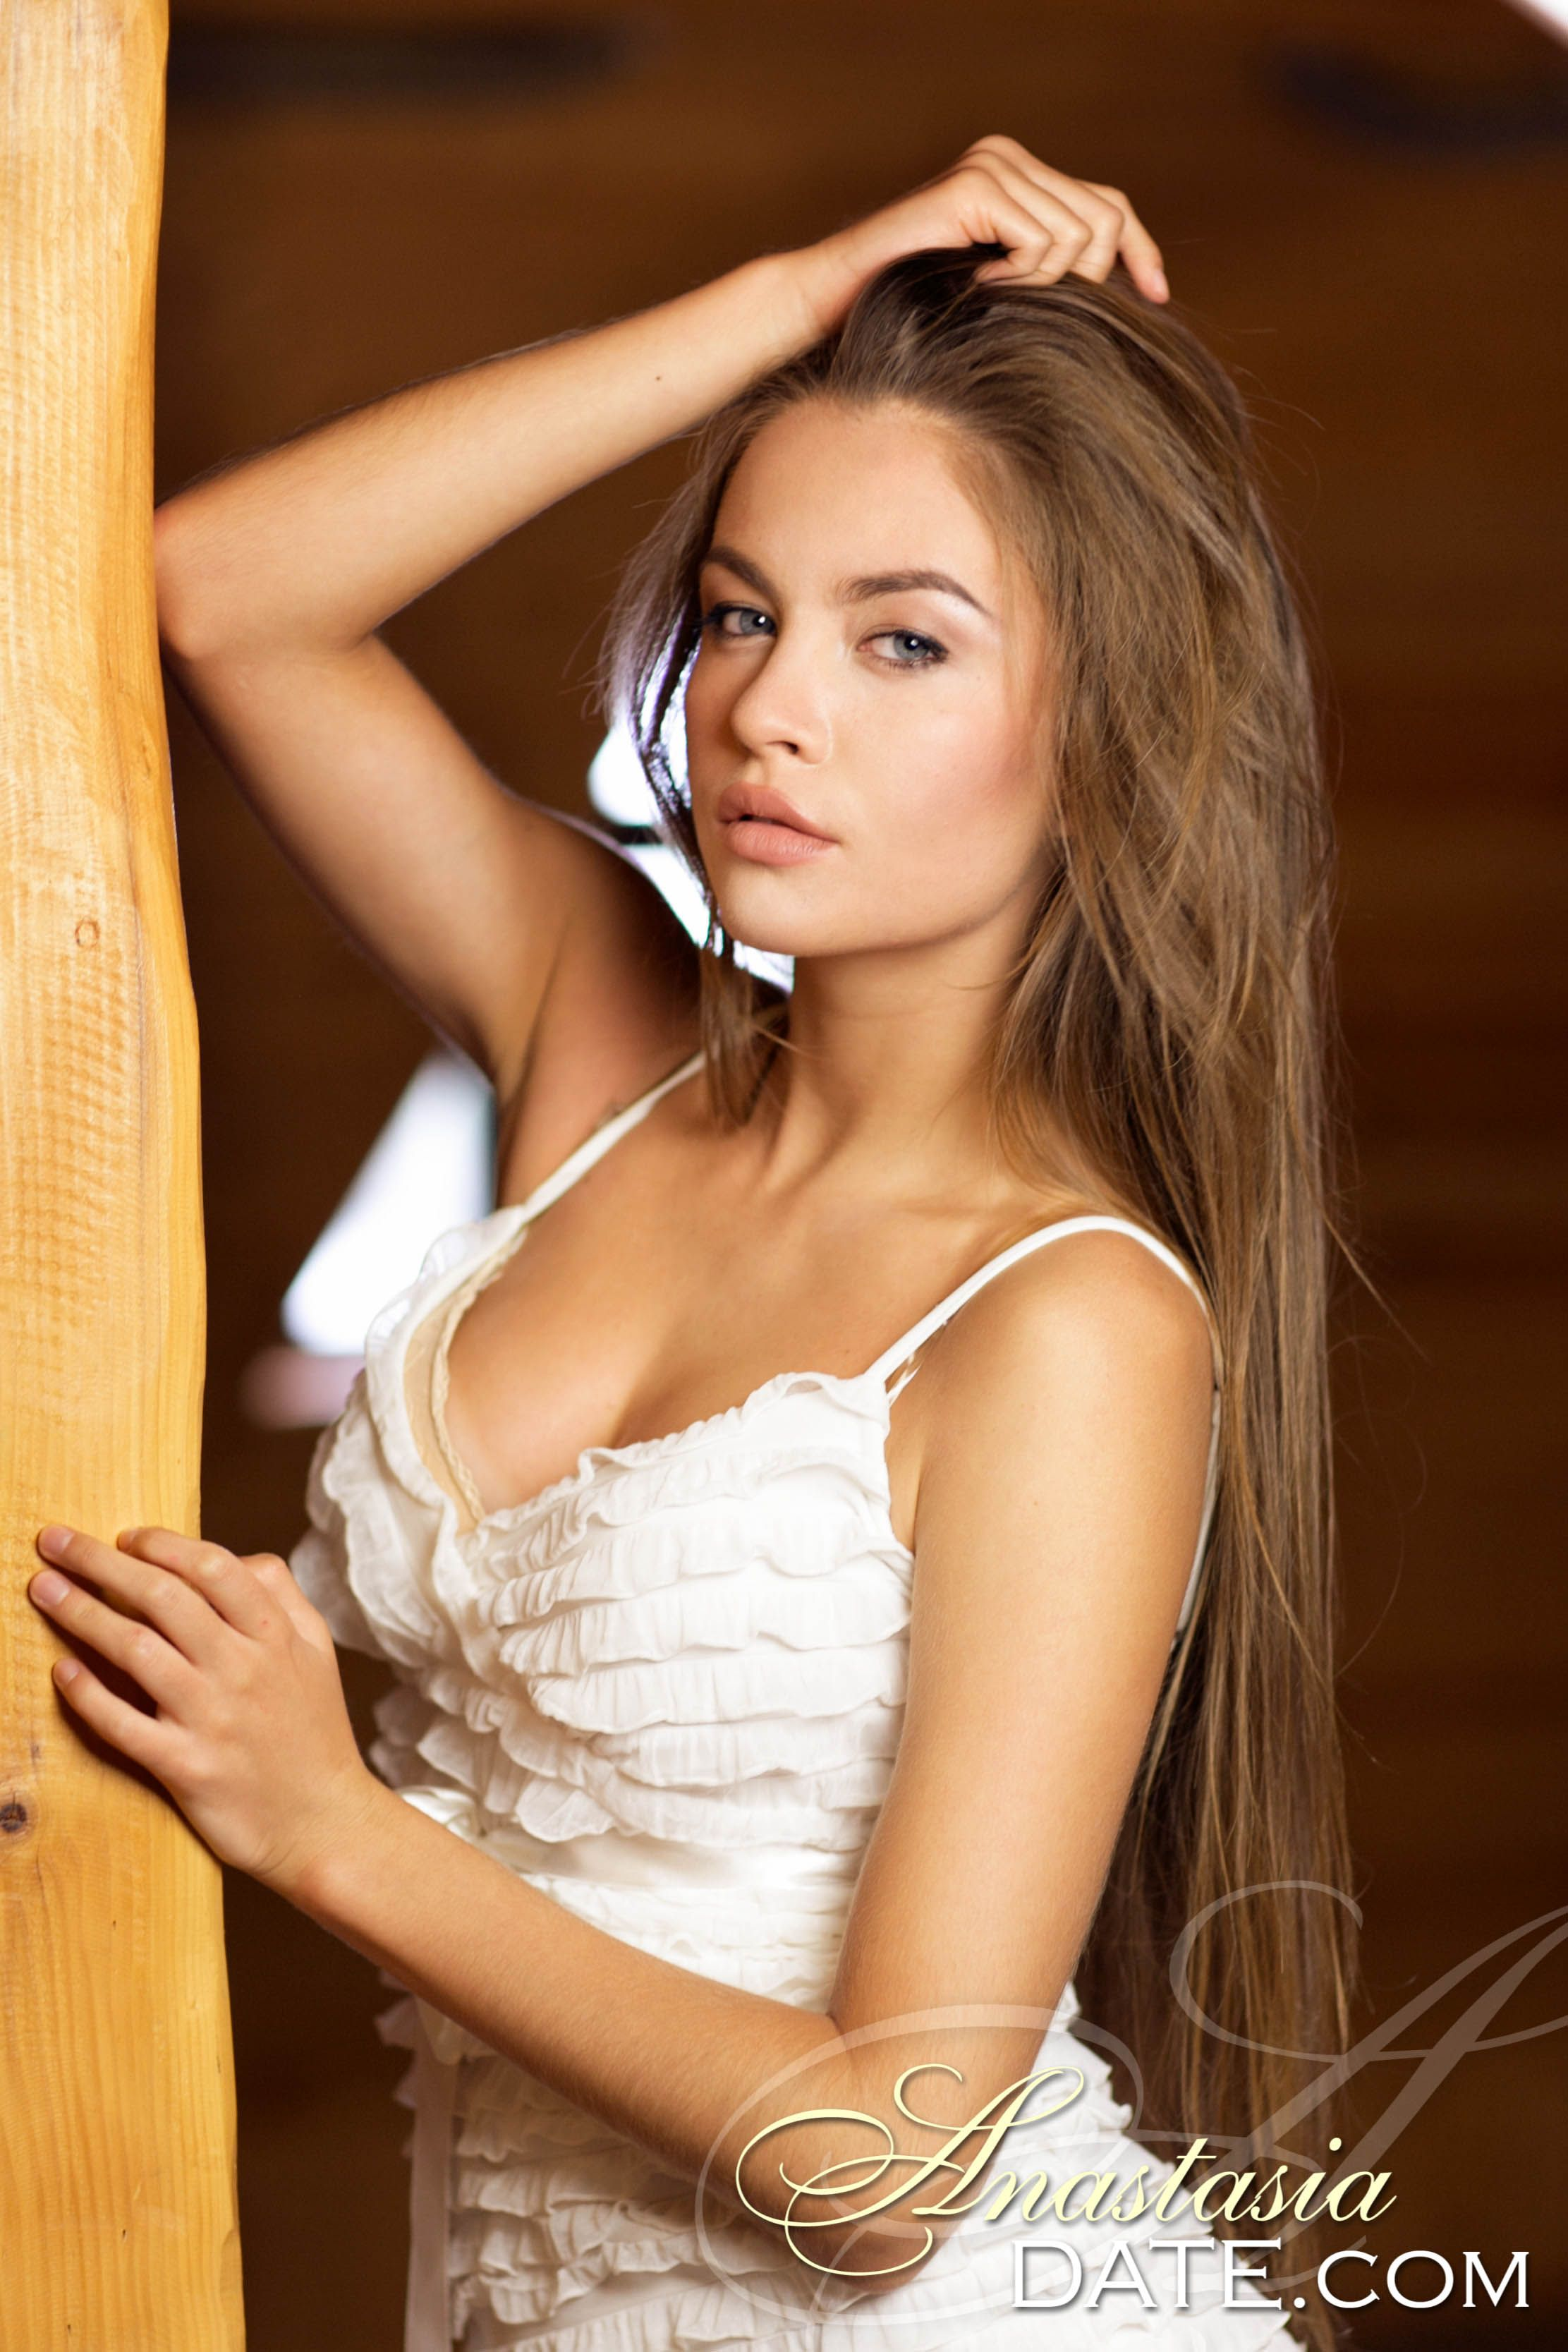 Free online dating and chat site for singles